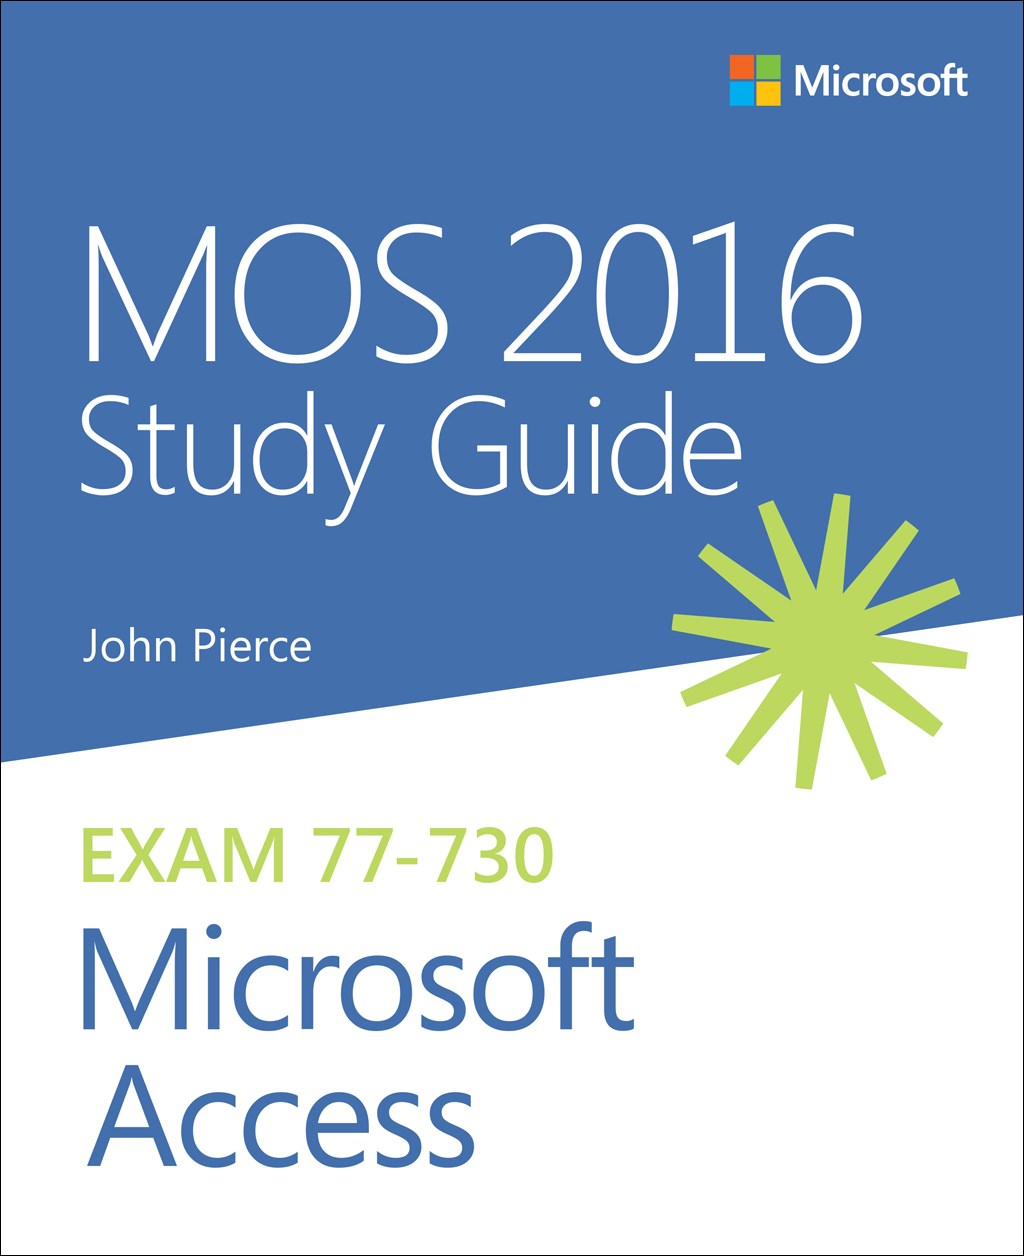 MOS 2016 Study Guide for Microsoft Access